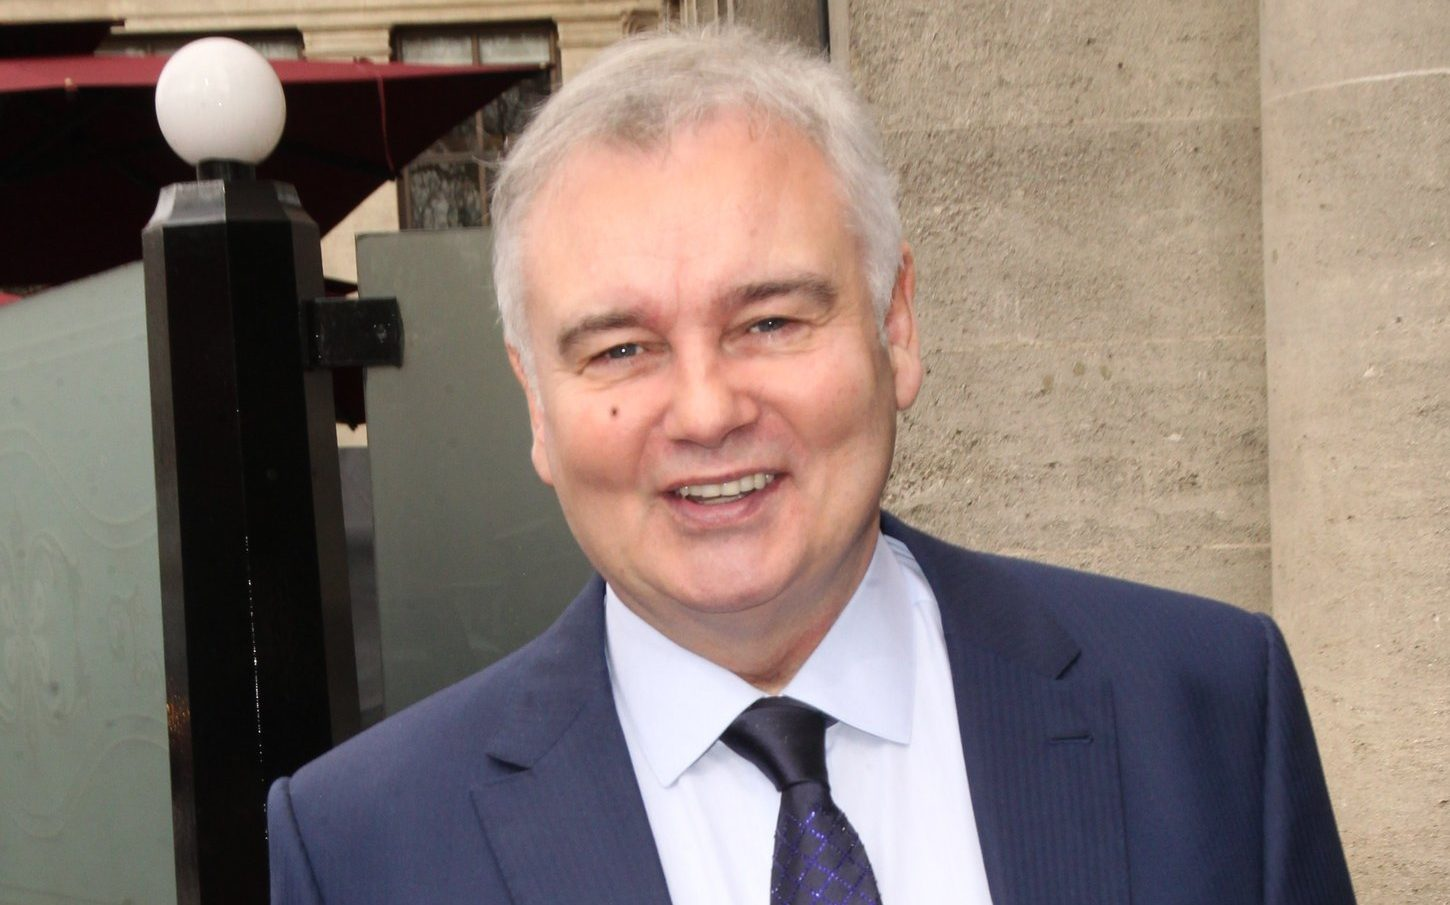 Eamonn Holmes predicts Love Island spin-off show